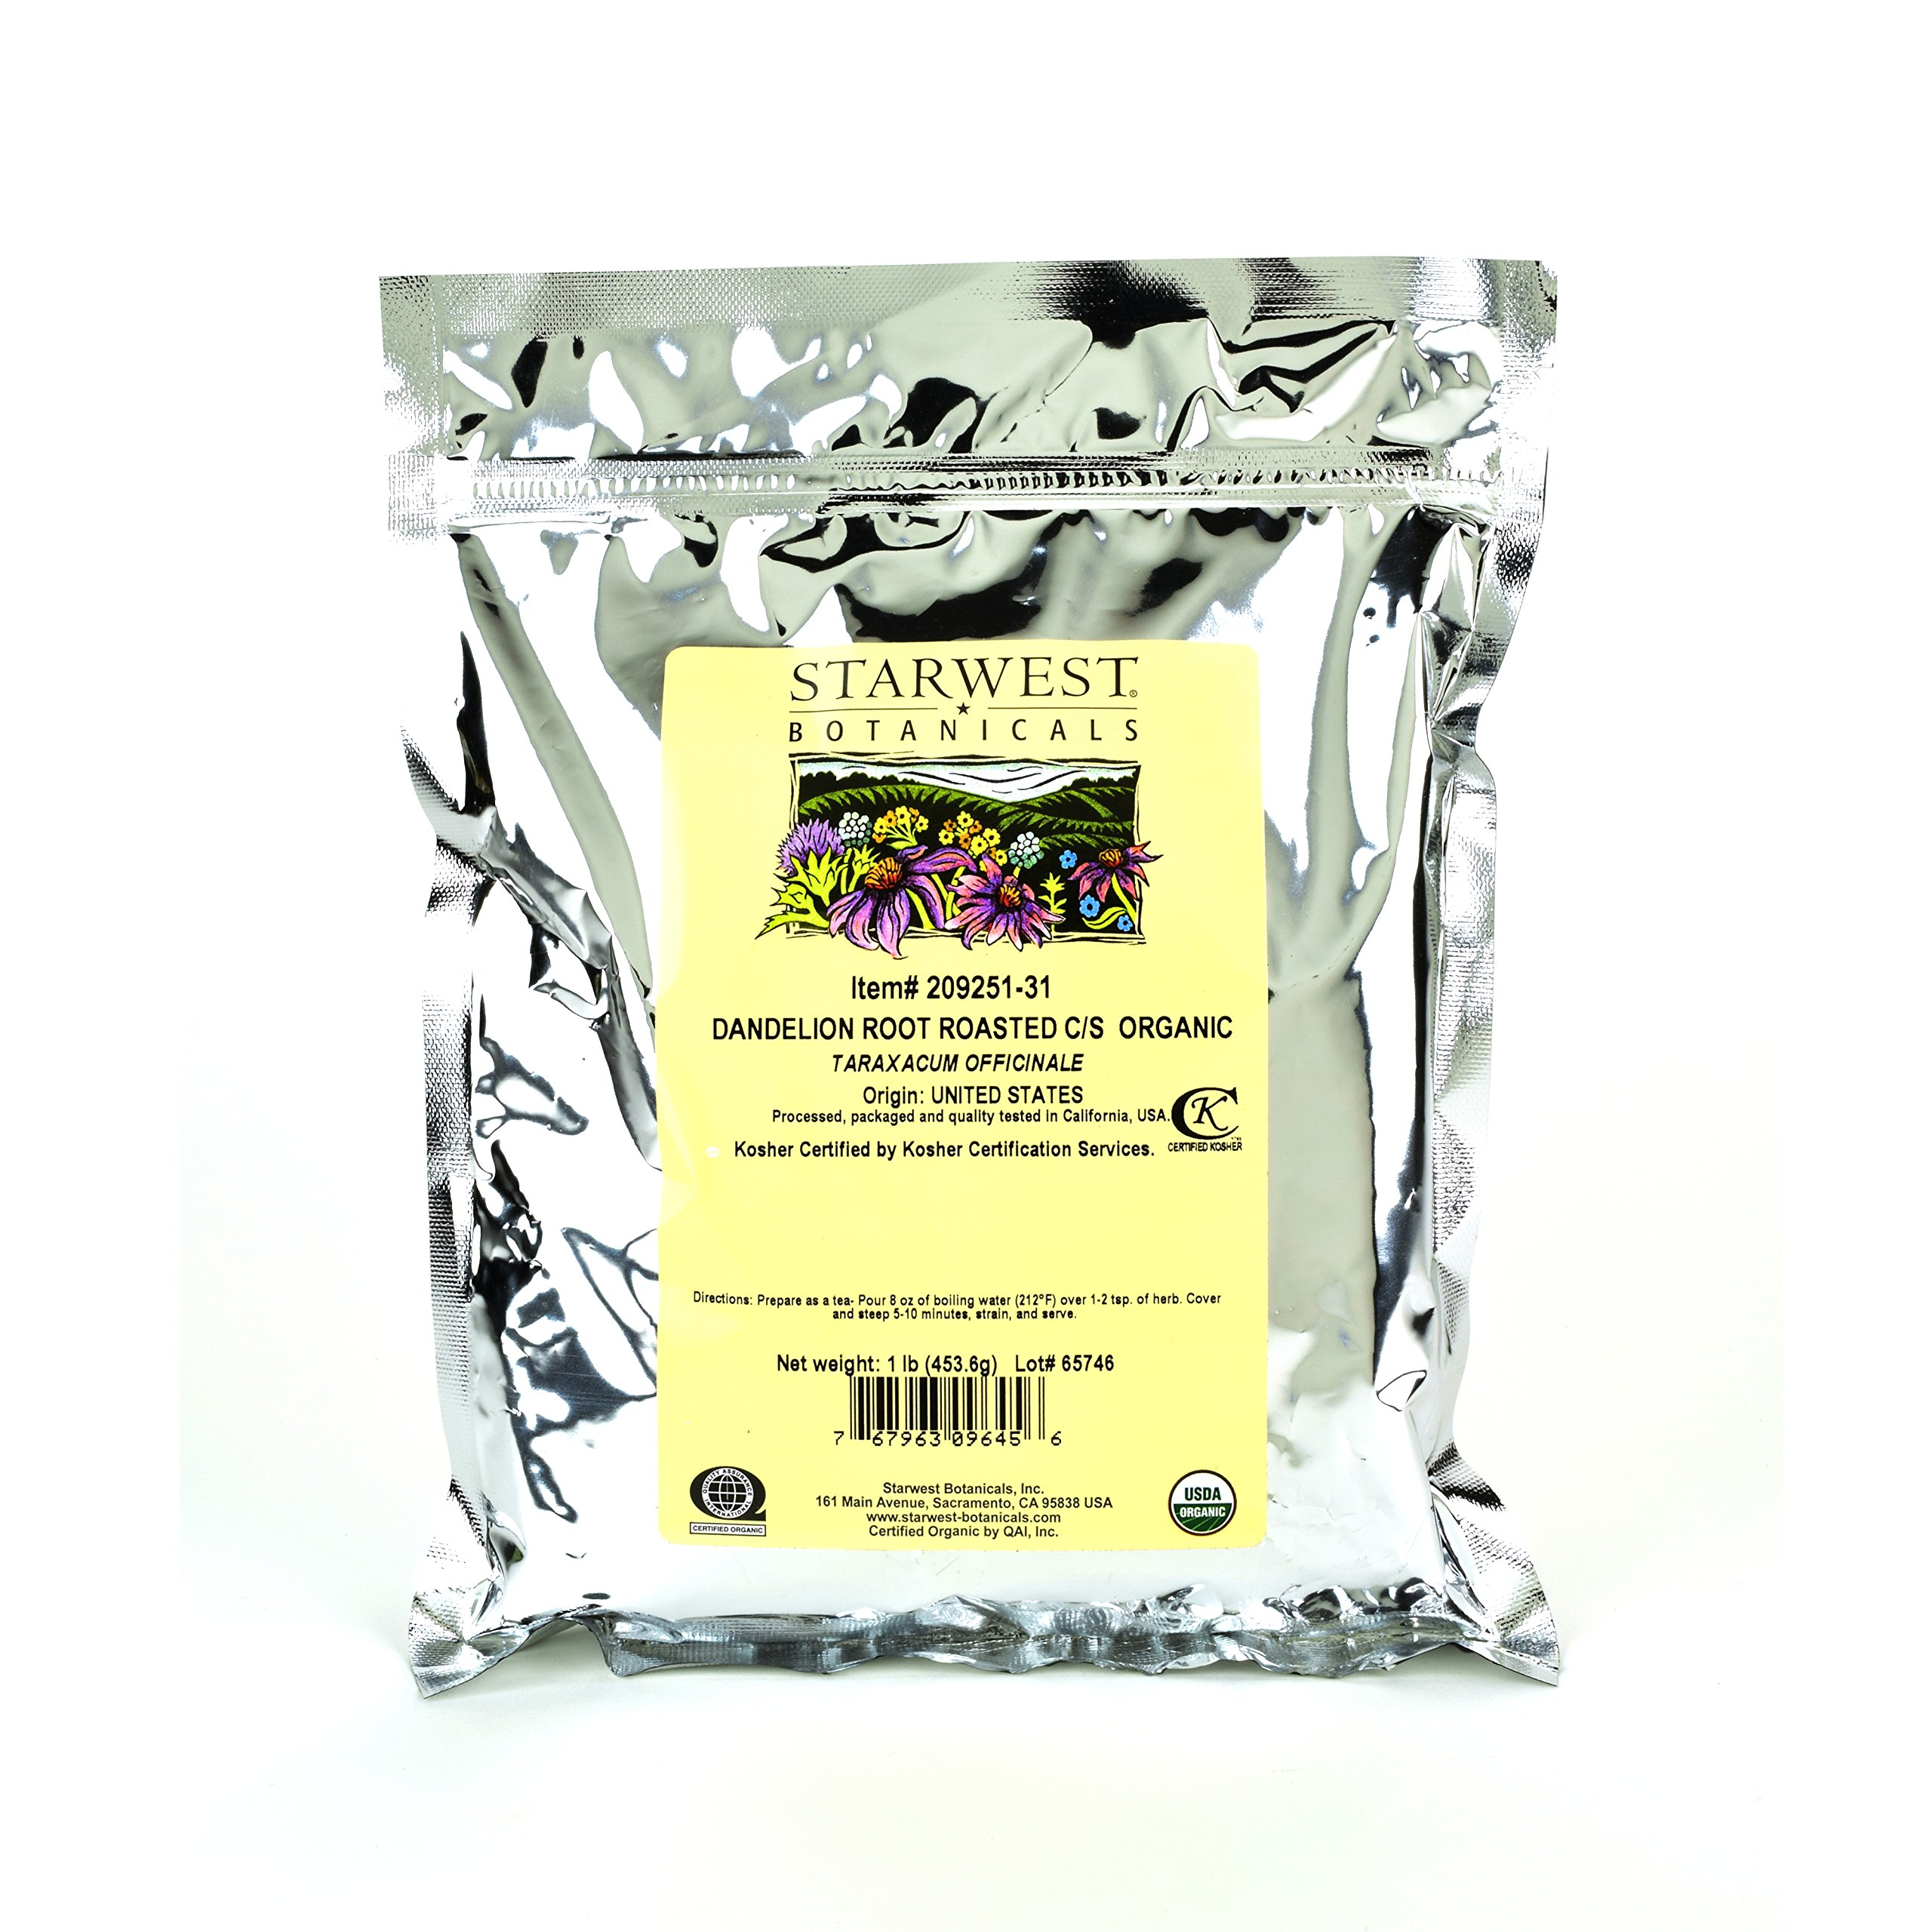 Starwest Botanicals Organic Dandelion Root Roasted Cut [1 Pound] Loose Tea in Bulk by Starwest Botanicals